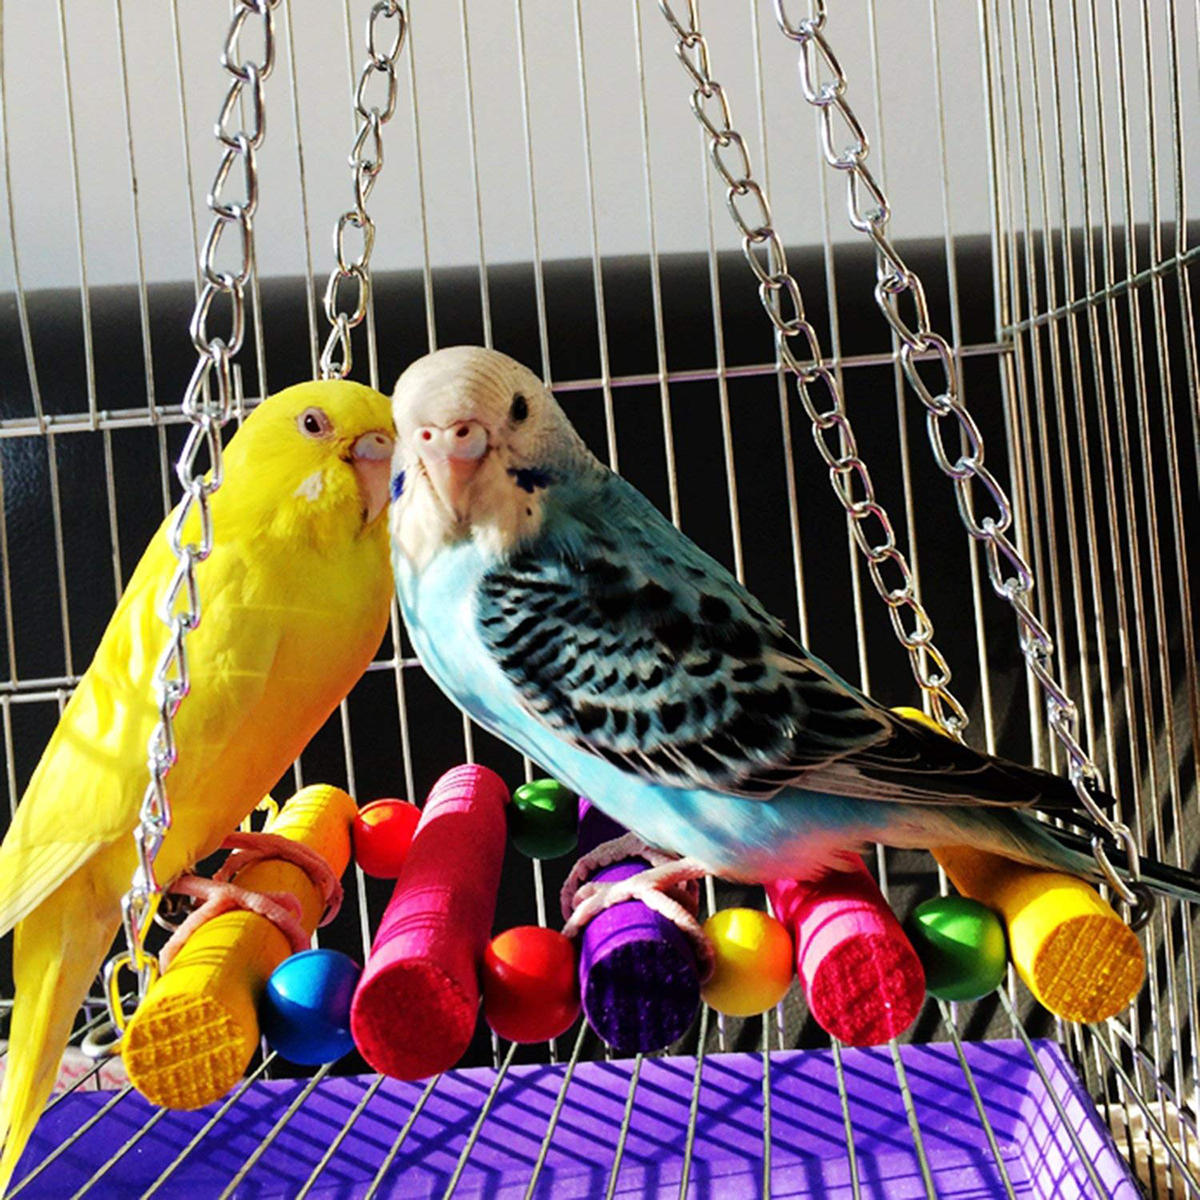 Parrot Toy Colorful Wooden Swing Suspension Bridge Standing Bar Bird Cage Accessories Pet Toys